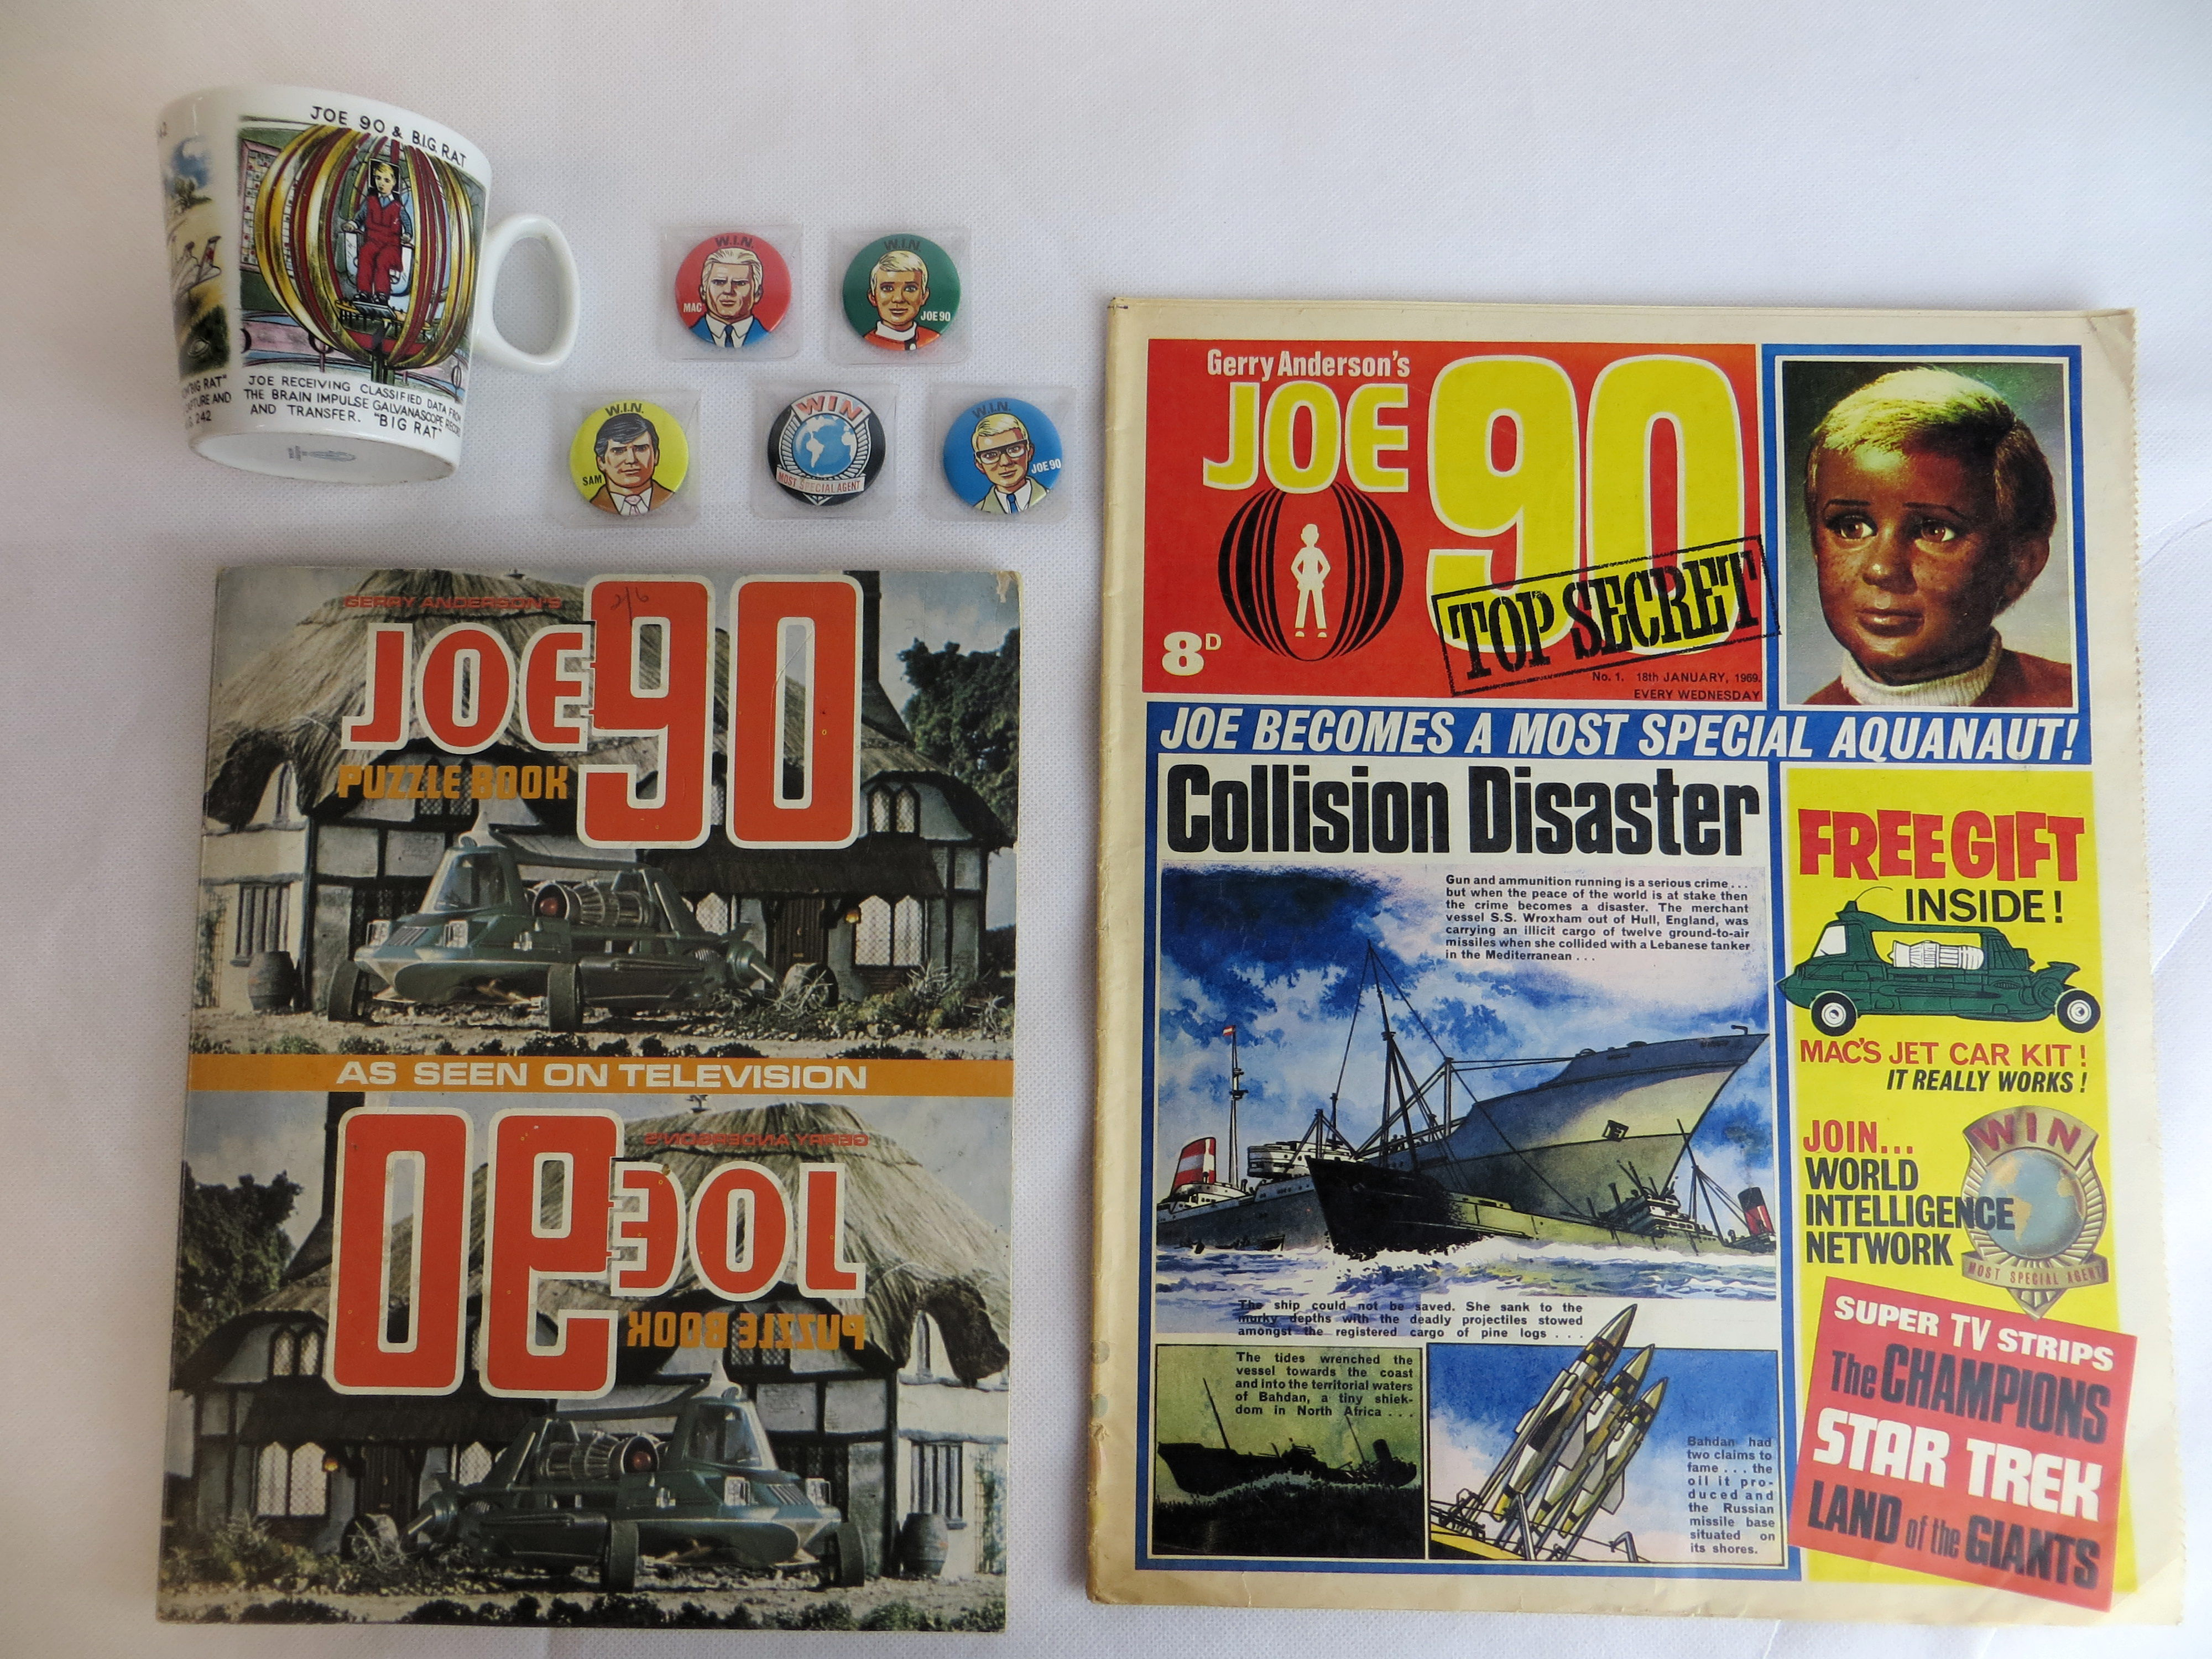 Joe 90 Comic Number One, published in 1969, with Joe 90 puzzle book, Washington pottery mug and badges, being offered at auction in Cardiff today by Langley and Jones